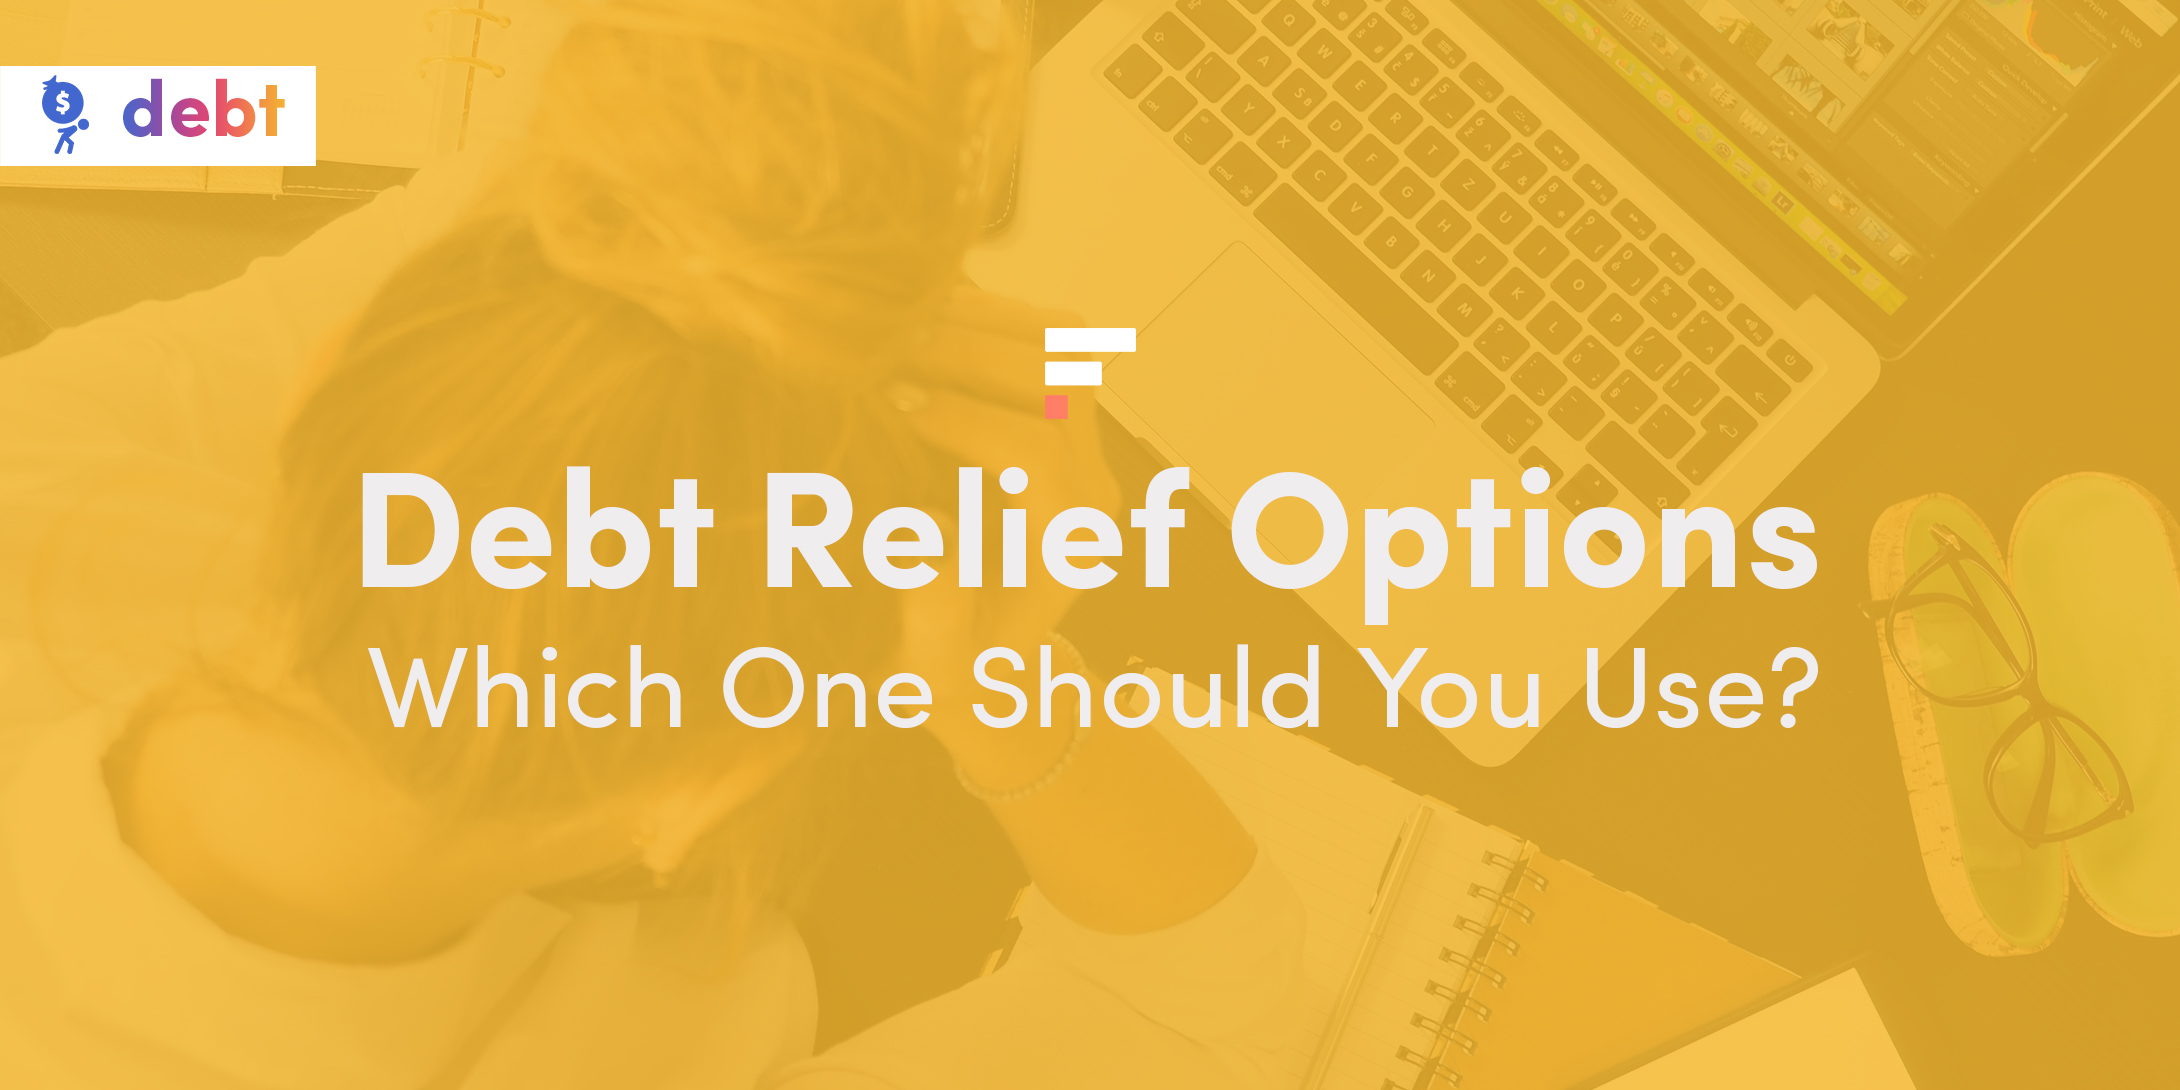 Debt Relief Options: Which One Should You Use?